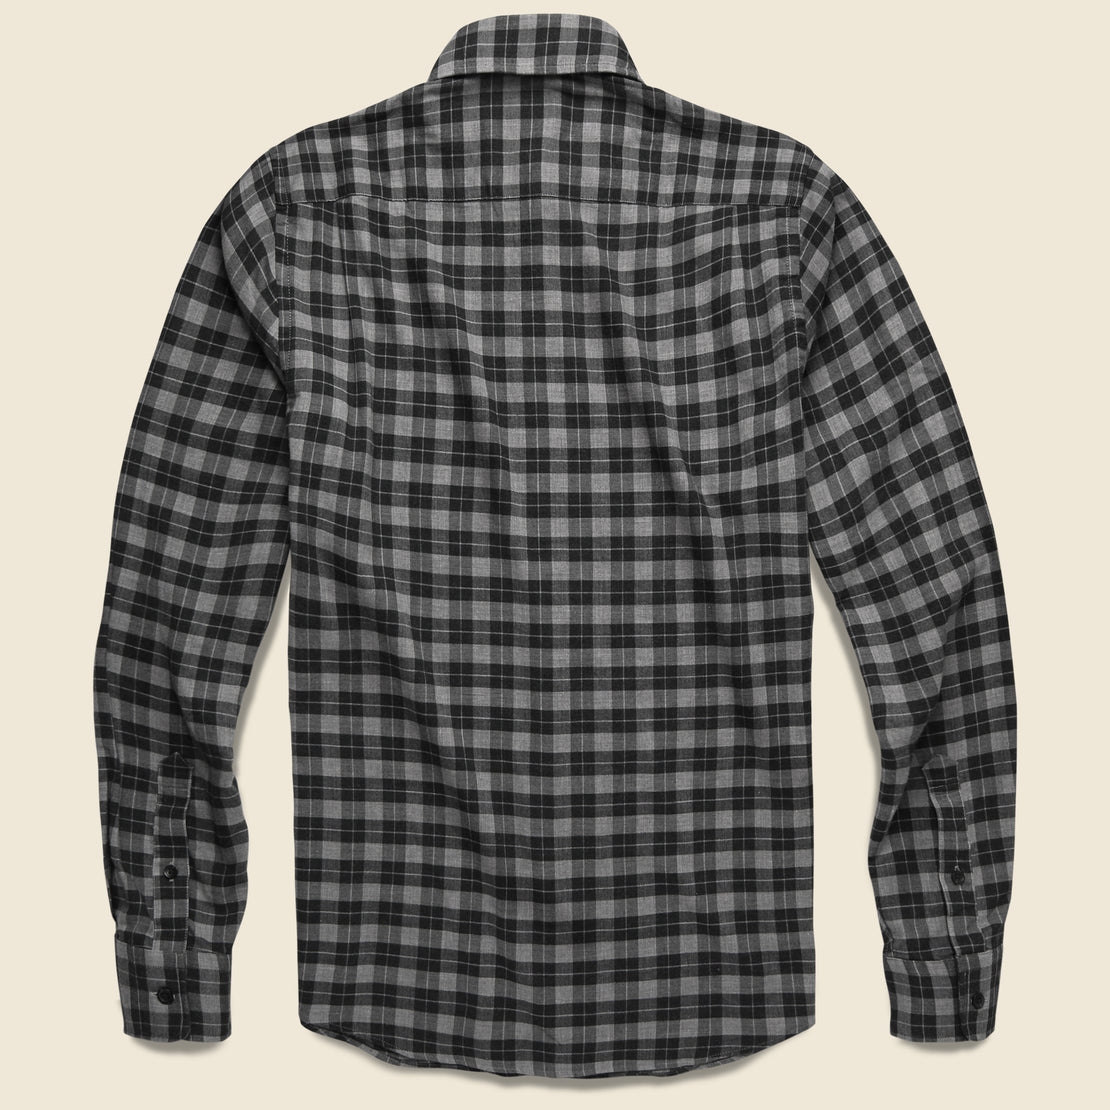 Everyday Shirt - Grey Charcoal Gingham